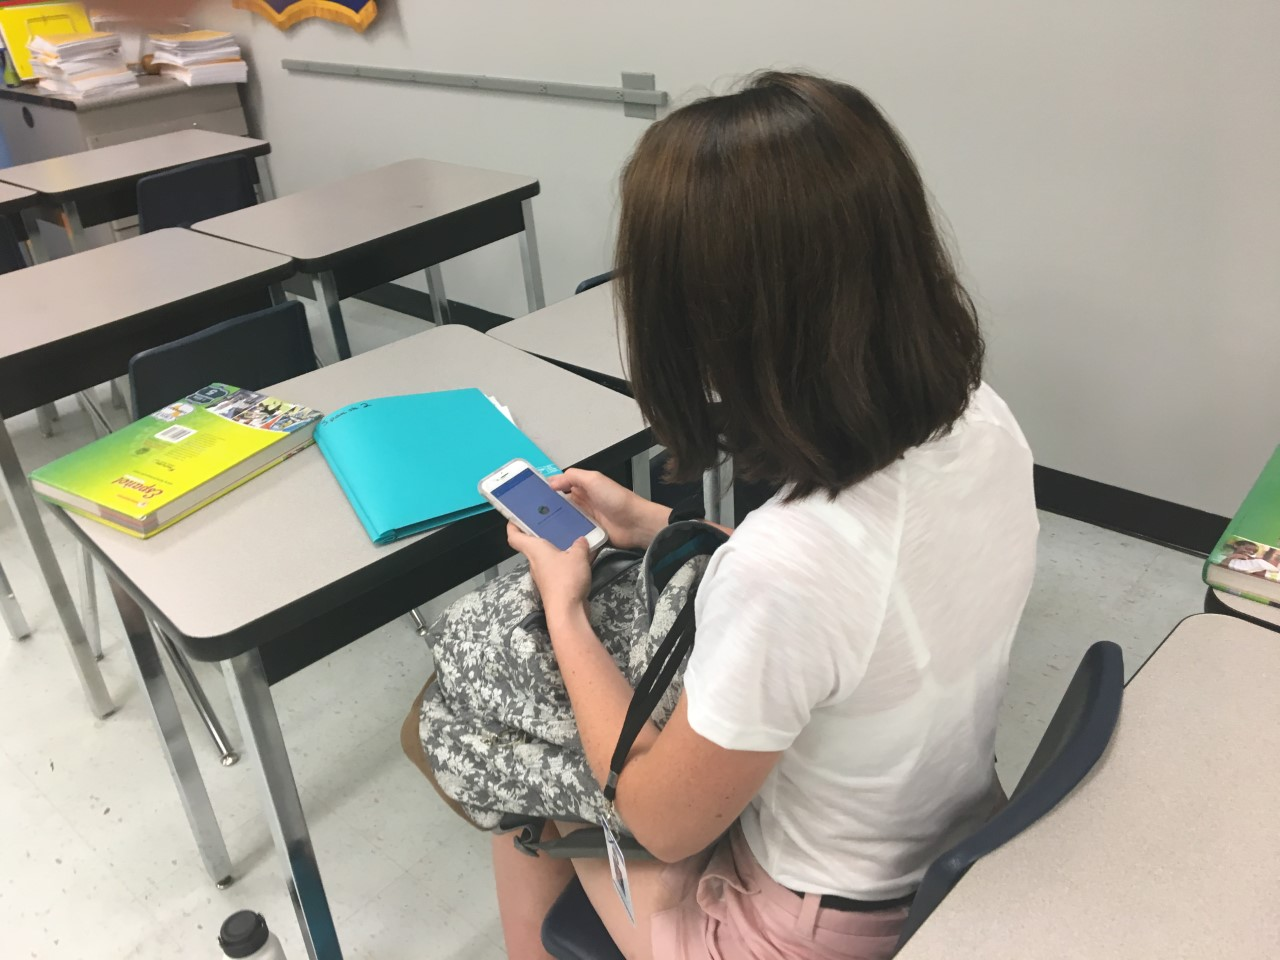 Sophomore Rebecca Rollins is checking School Messenger in between fourth period and lunch. She used the app to check if she had to do anything for Spanish or Key Club.